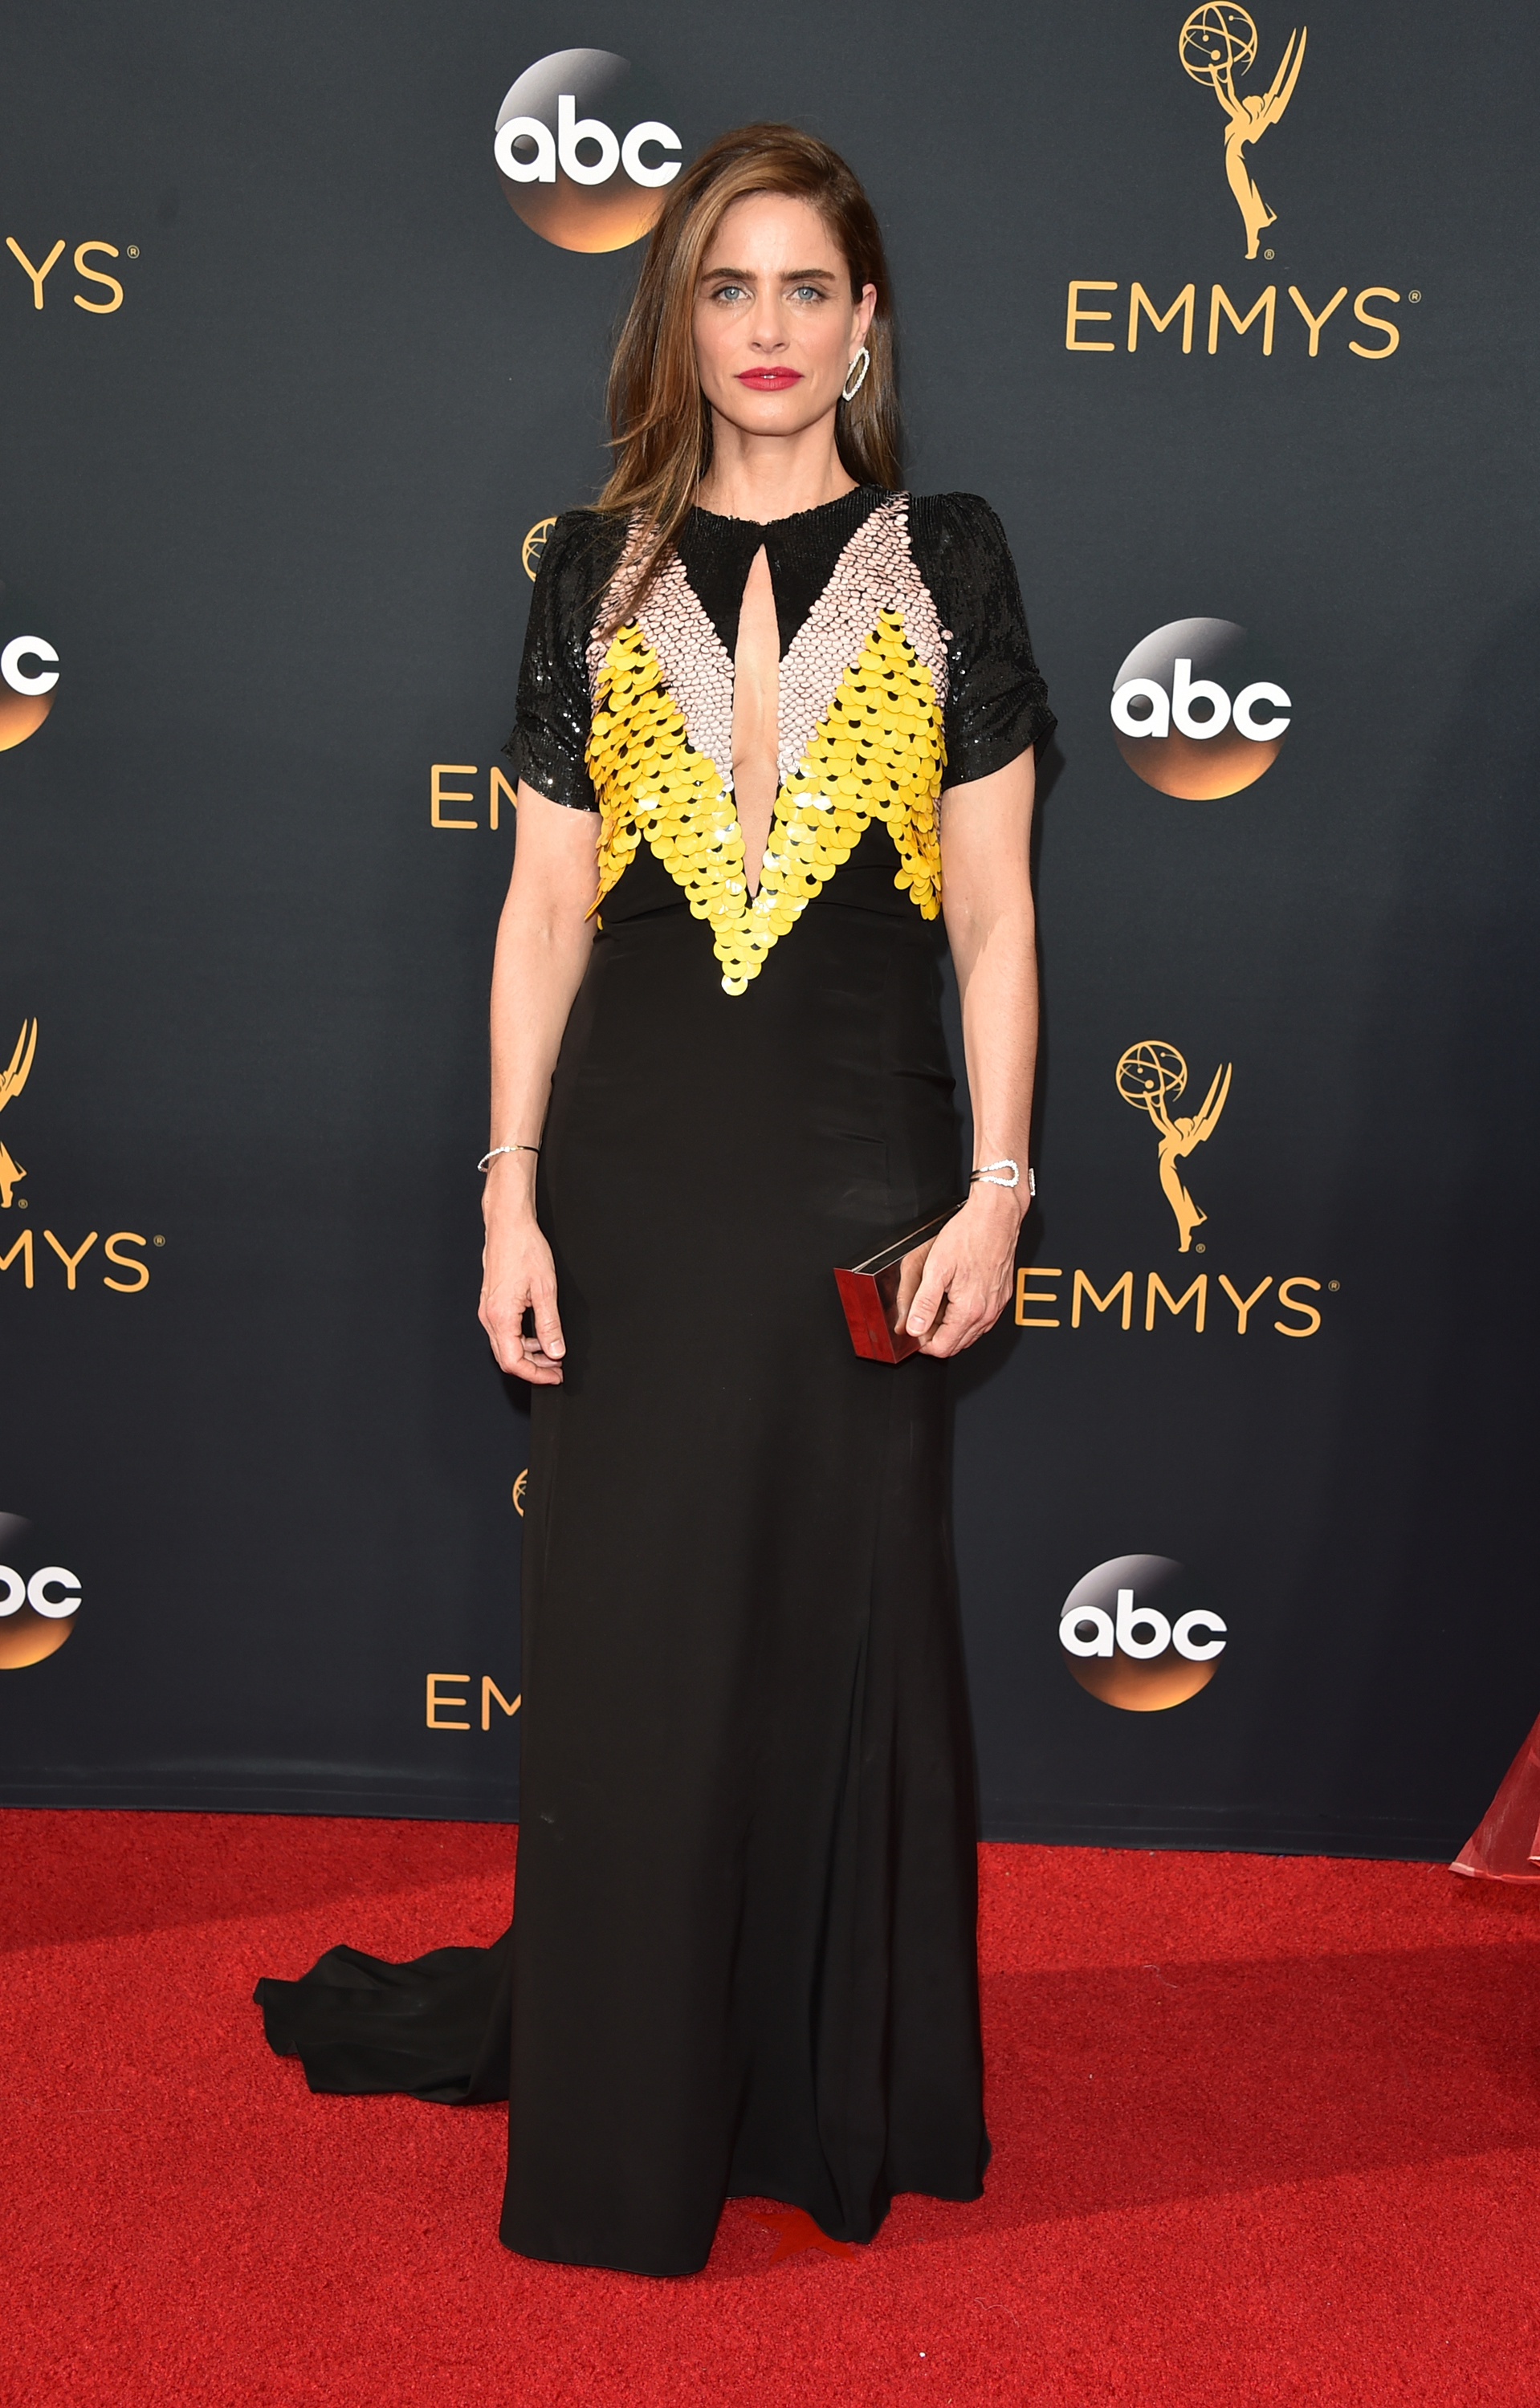 Amanda Peet arrives at the 68th Annual Primetime Emmy Awards at Microsoft Theater on Sept. 18, 2016 in Los Angeles.